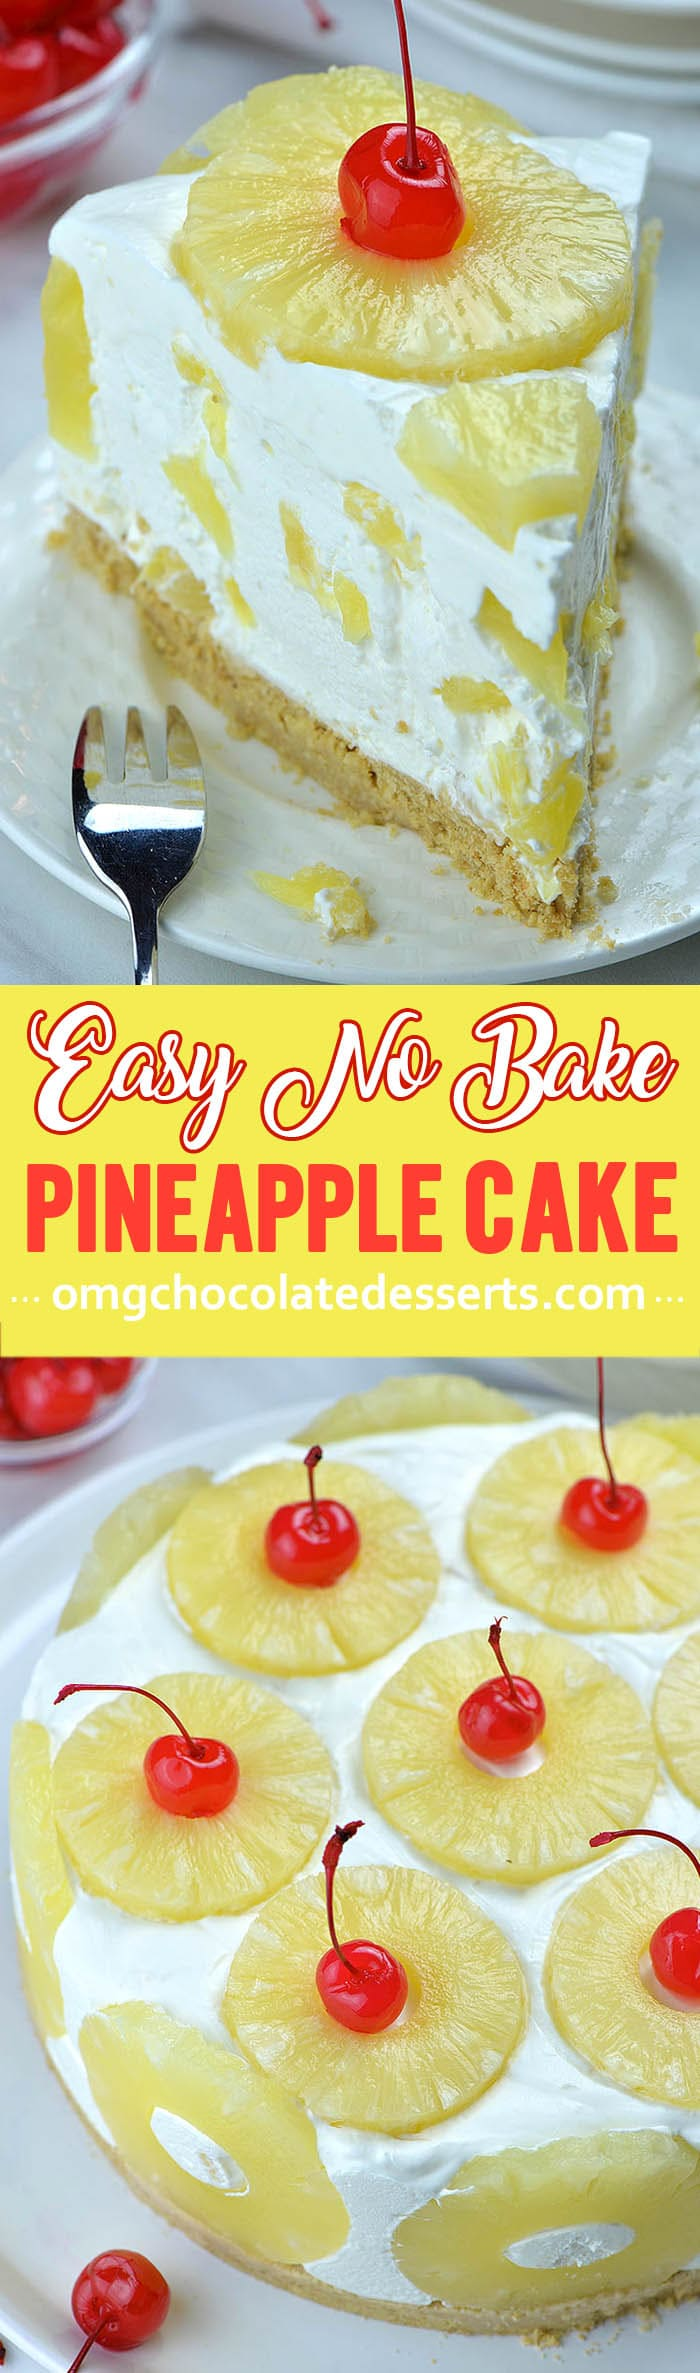 No Bake Pineapple Cake is quick and easy summer dessert recipe. Plus, this quick and easy desert recipe is totally NO BAKE which is exactly what you want in the summer.